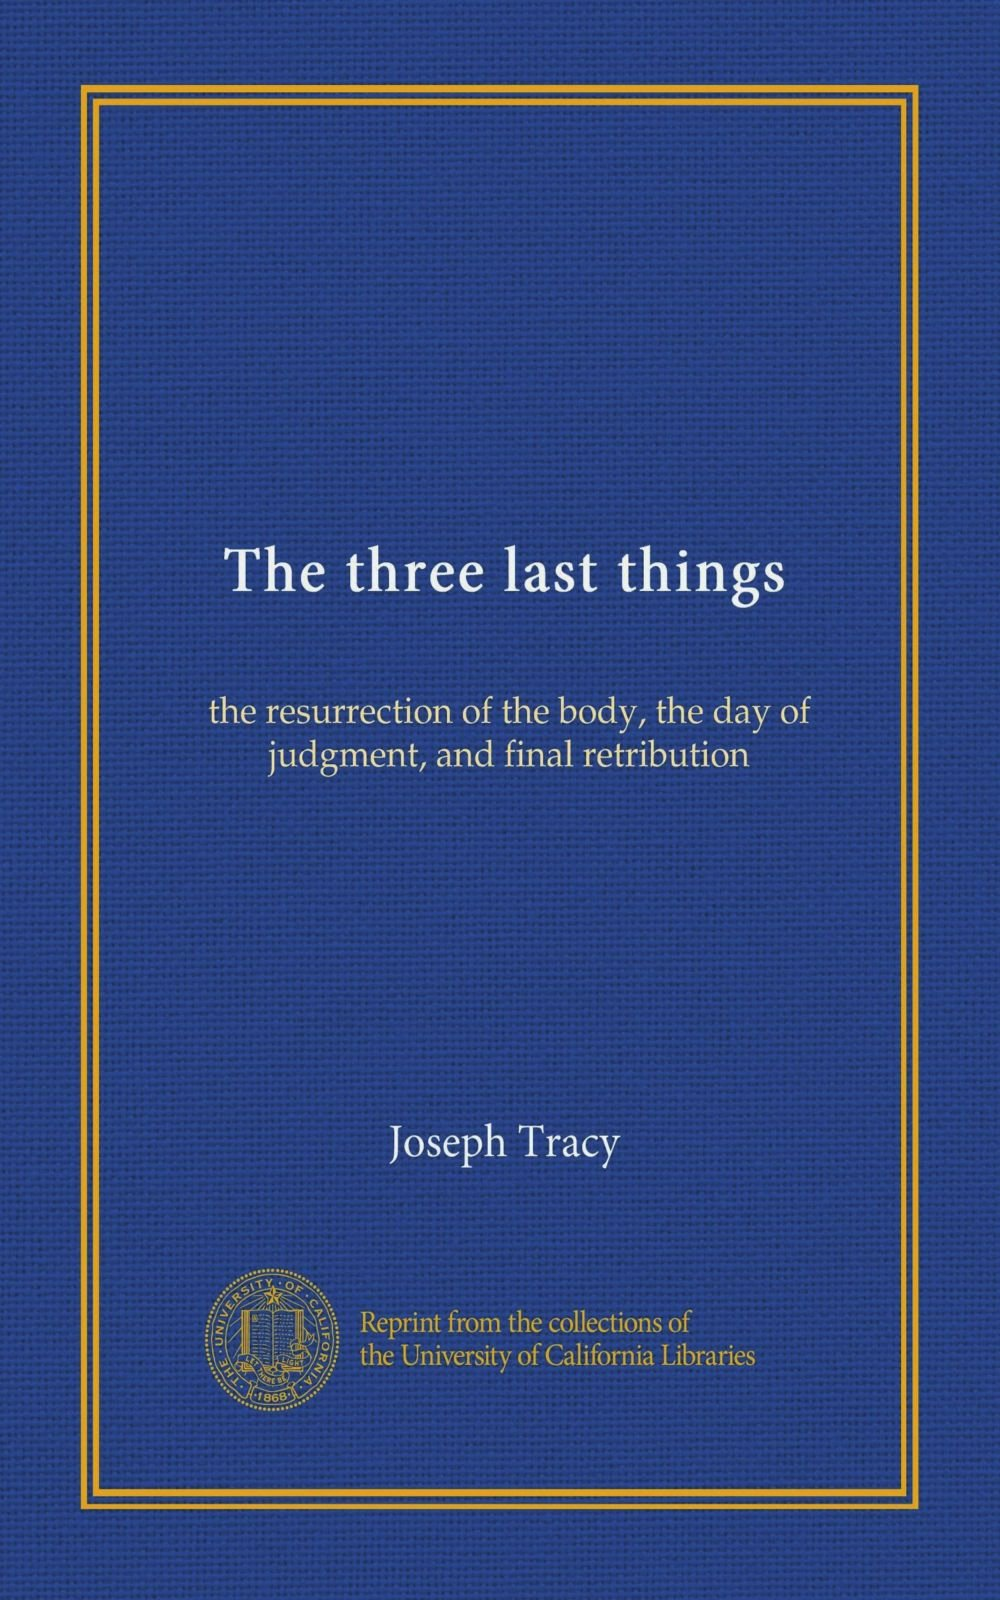 The three last things: the resurrection of the body, the day of judgment, and final retribution ebook